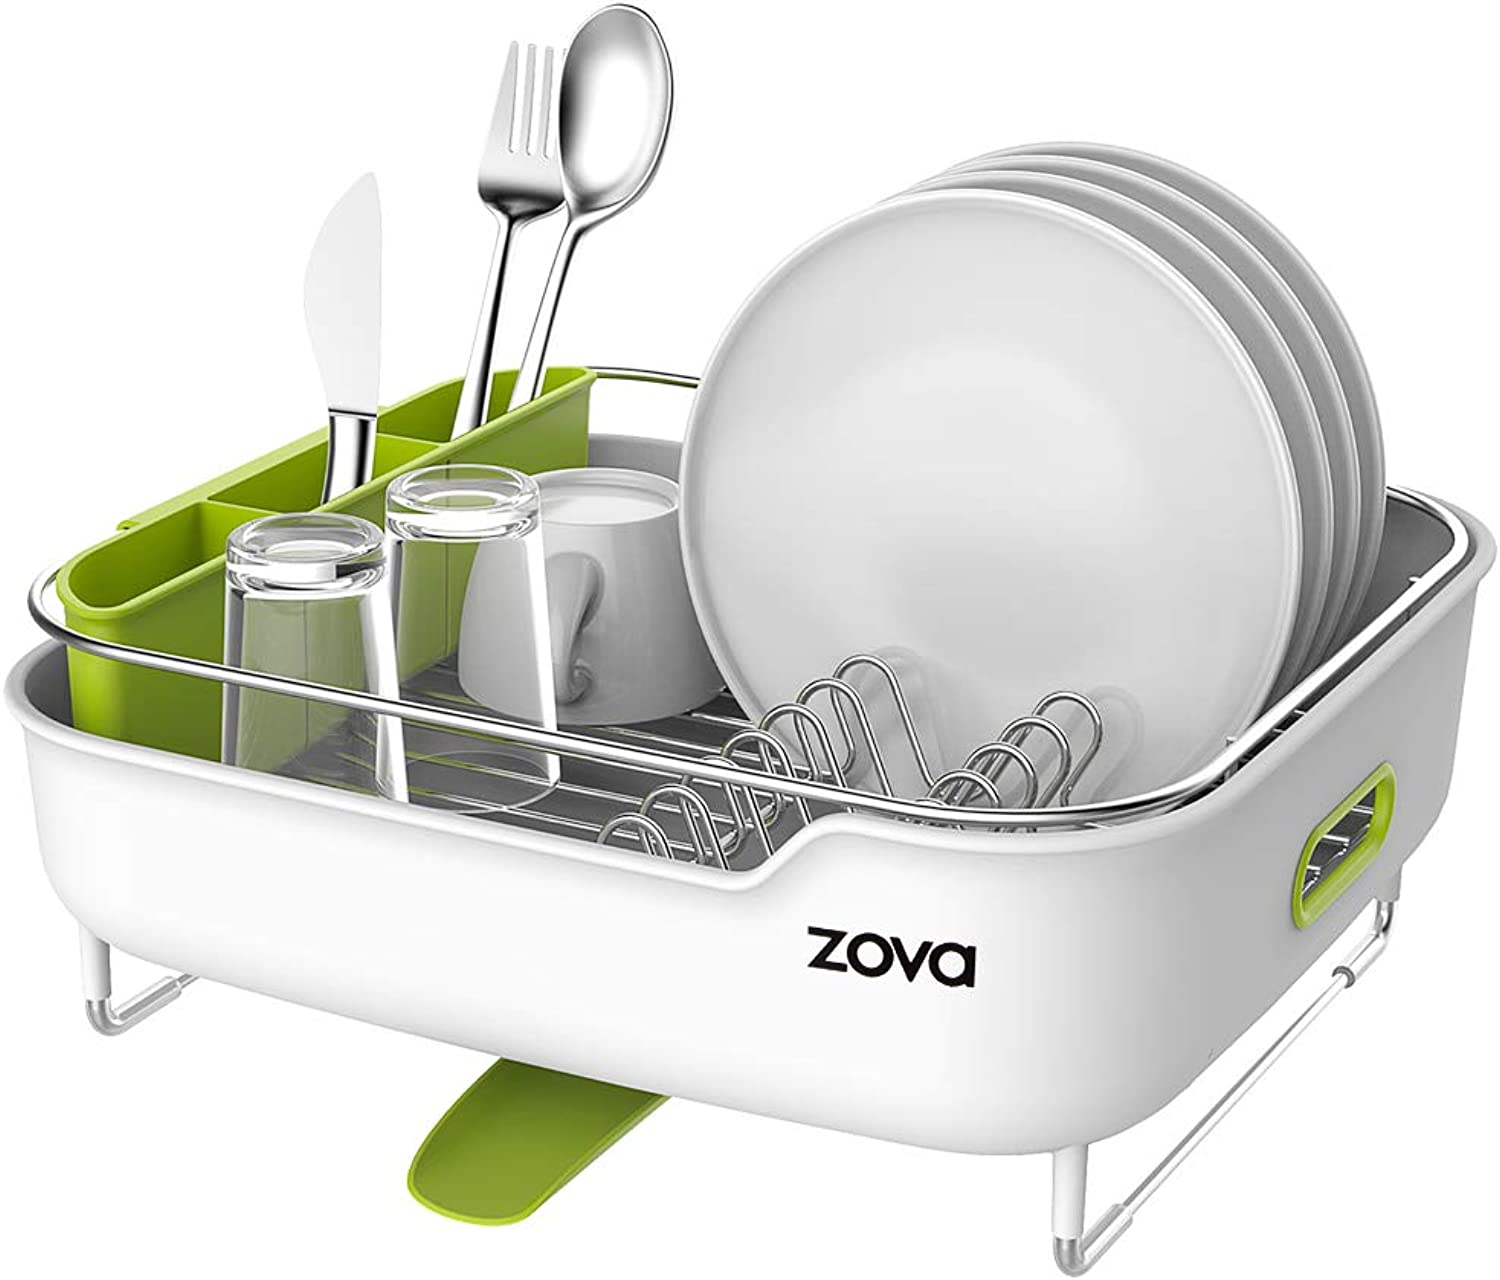 Zova Premium Stainless Steel Dish Drying Rack with Swivel Spout, Dish Drainer Utensil Organizer for Kitchen– Medium, White &Green